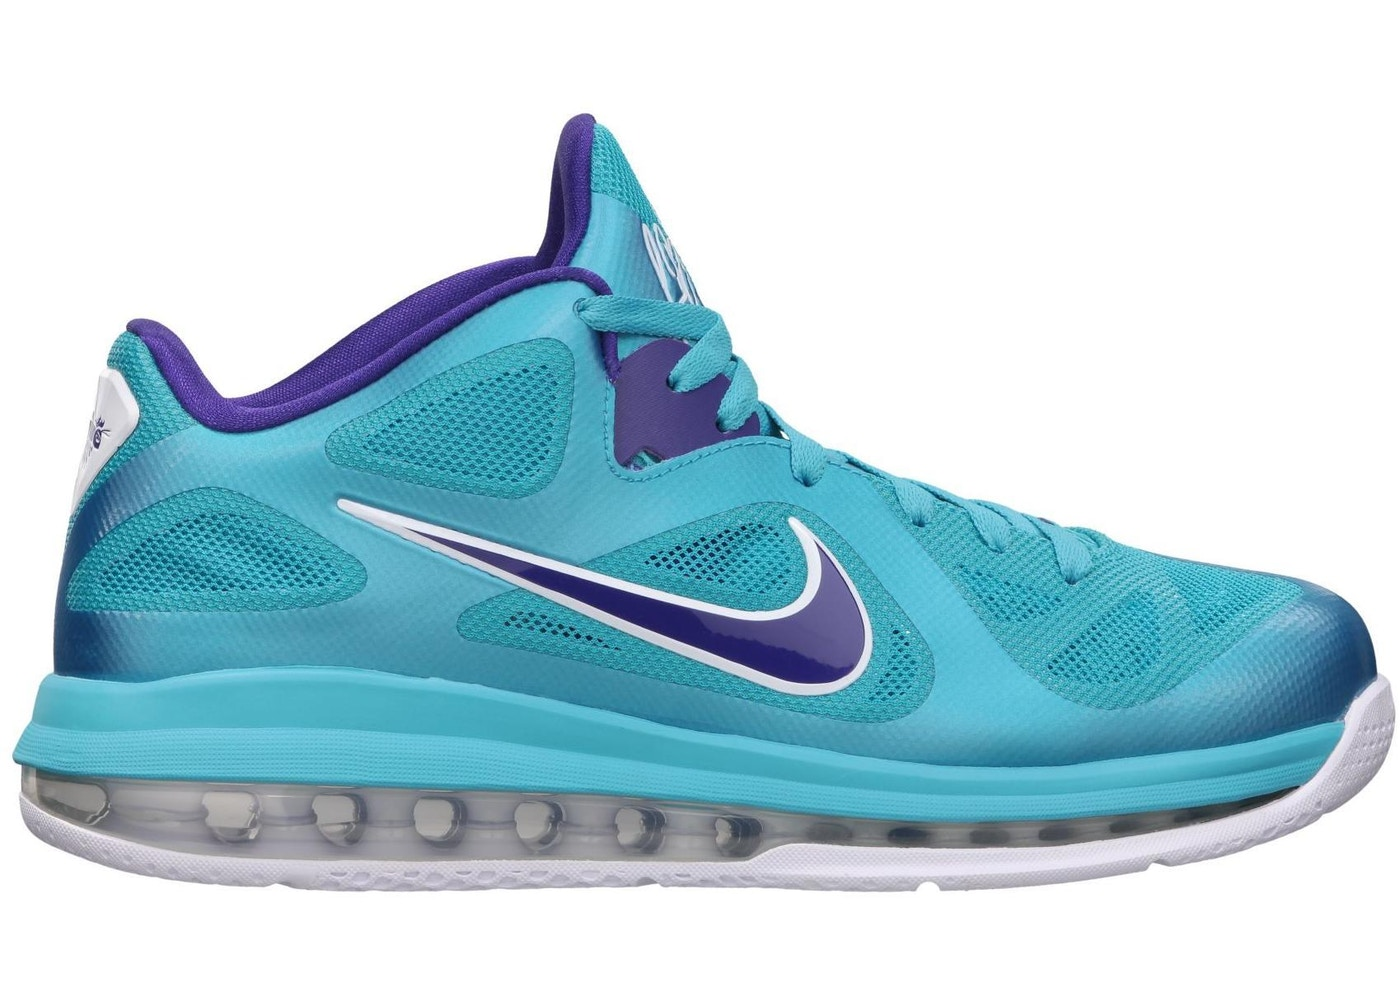 90d14a08556 LeBron 9 Low Summit Lake Hornets - 510811-400